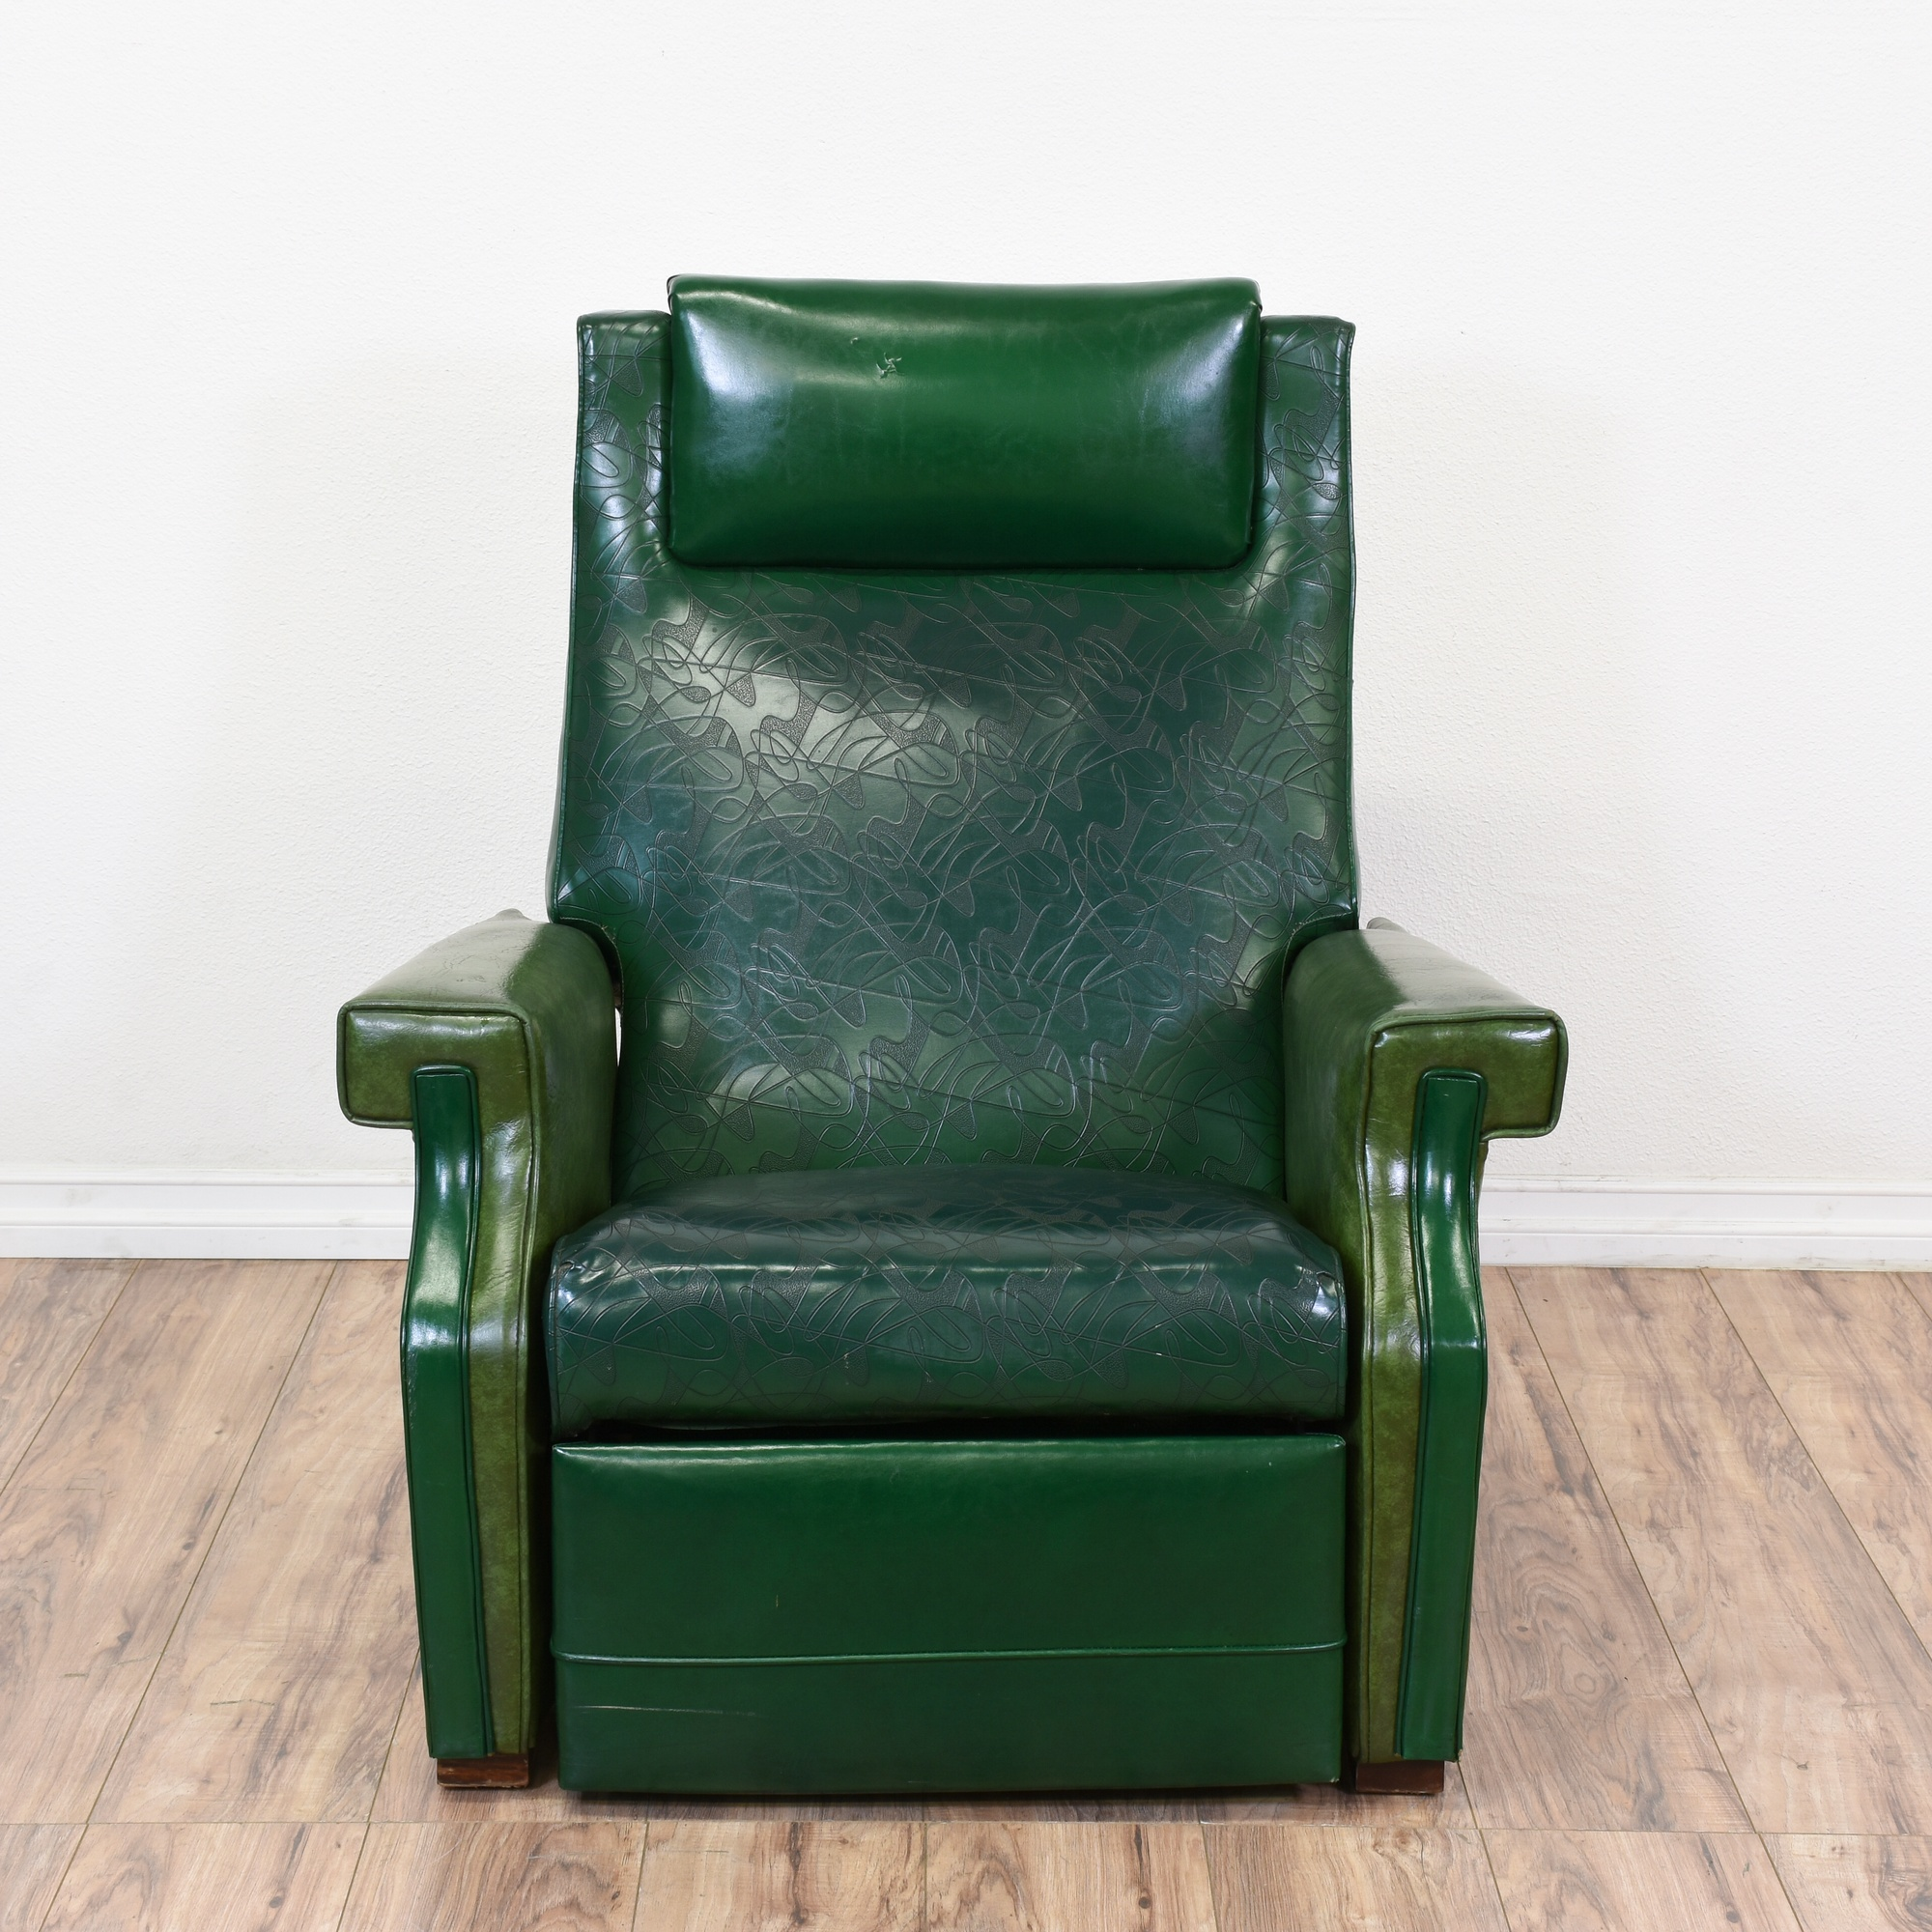 Retro Modern give mid century furniture an upcycled ...   Retro Modern Recliners